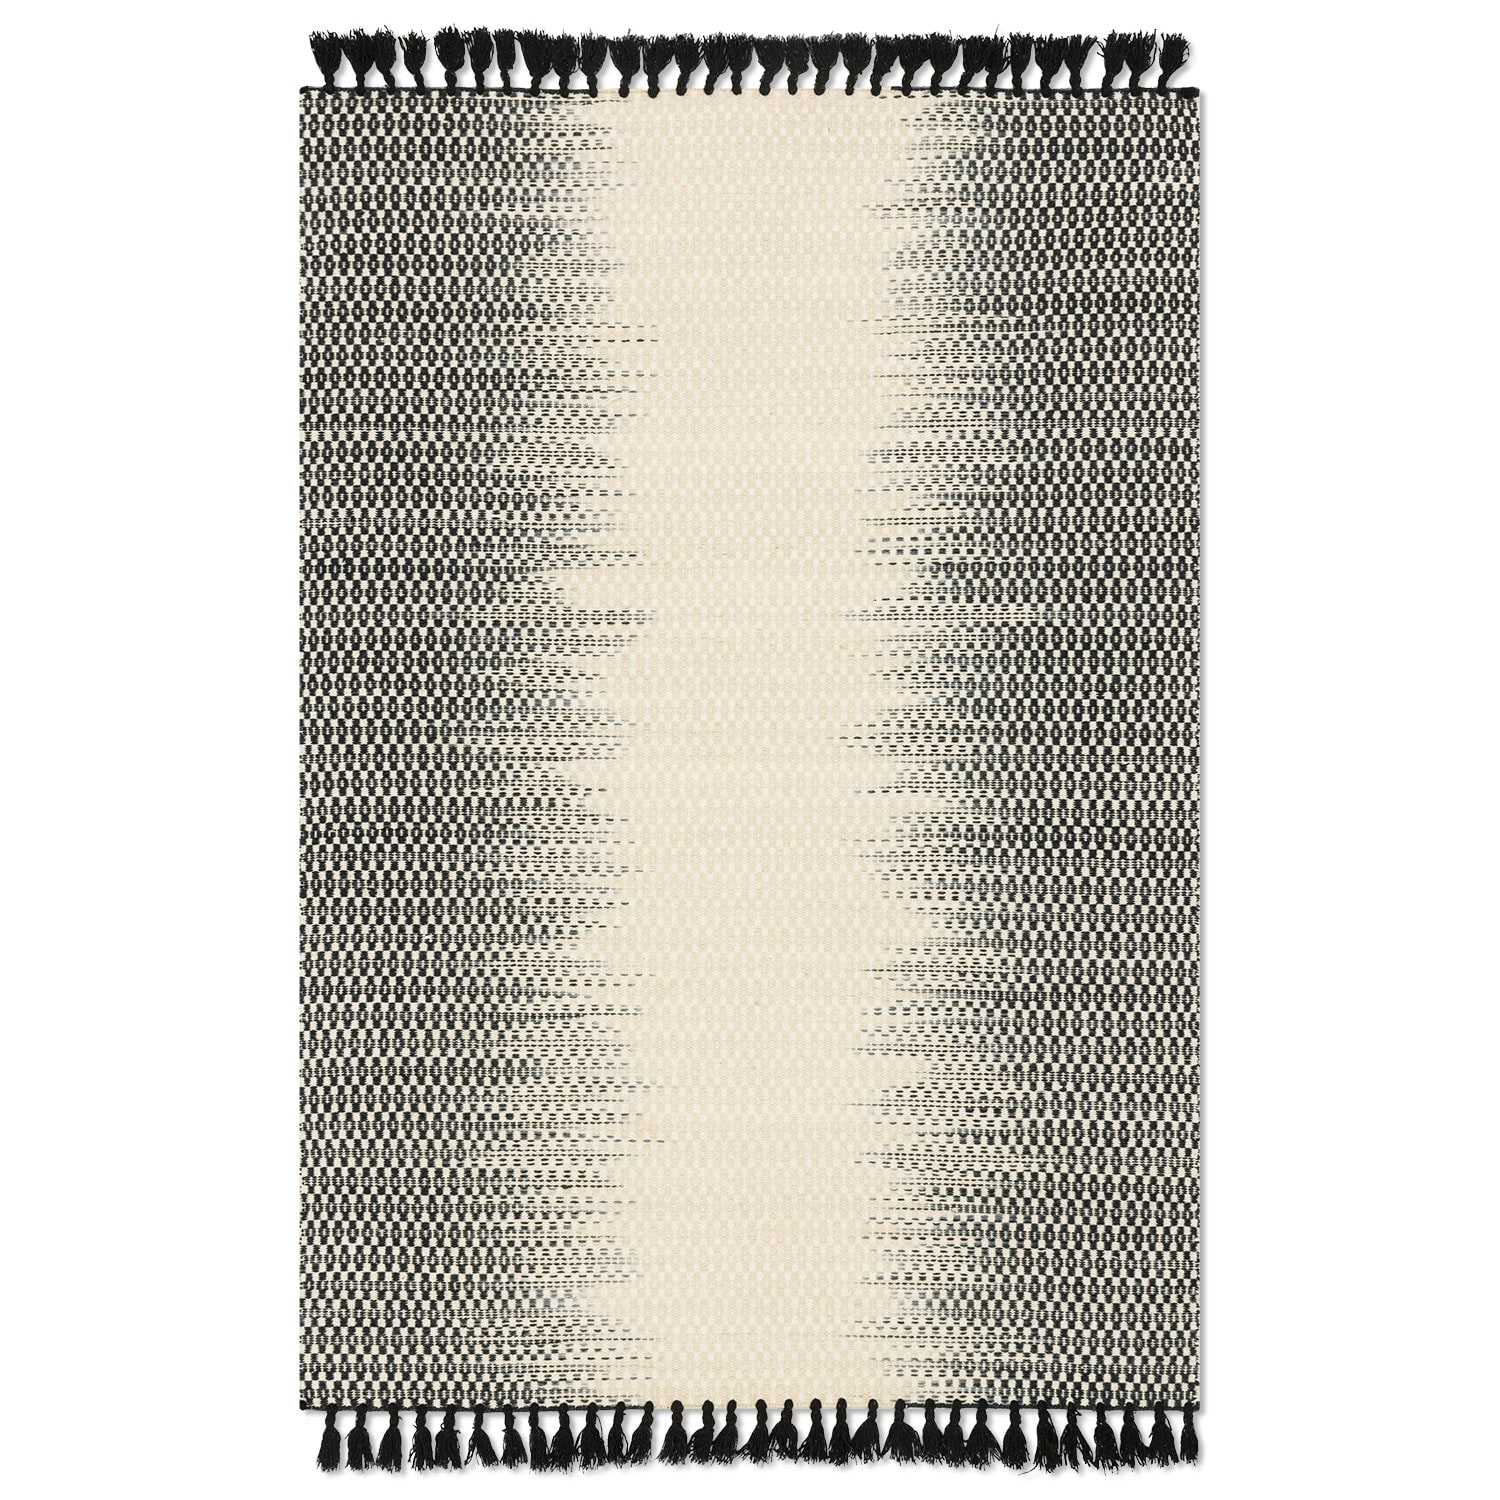 Rugs - Chantilly 9' x 13' Rug - Ivory and Black